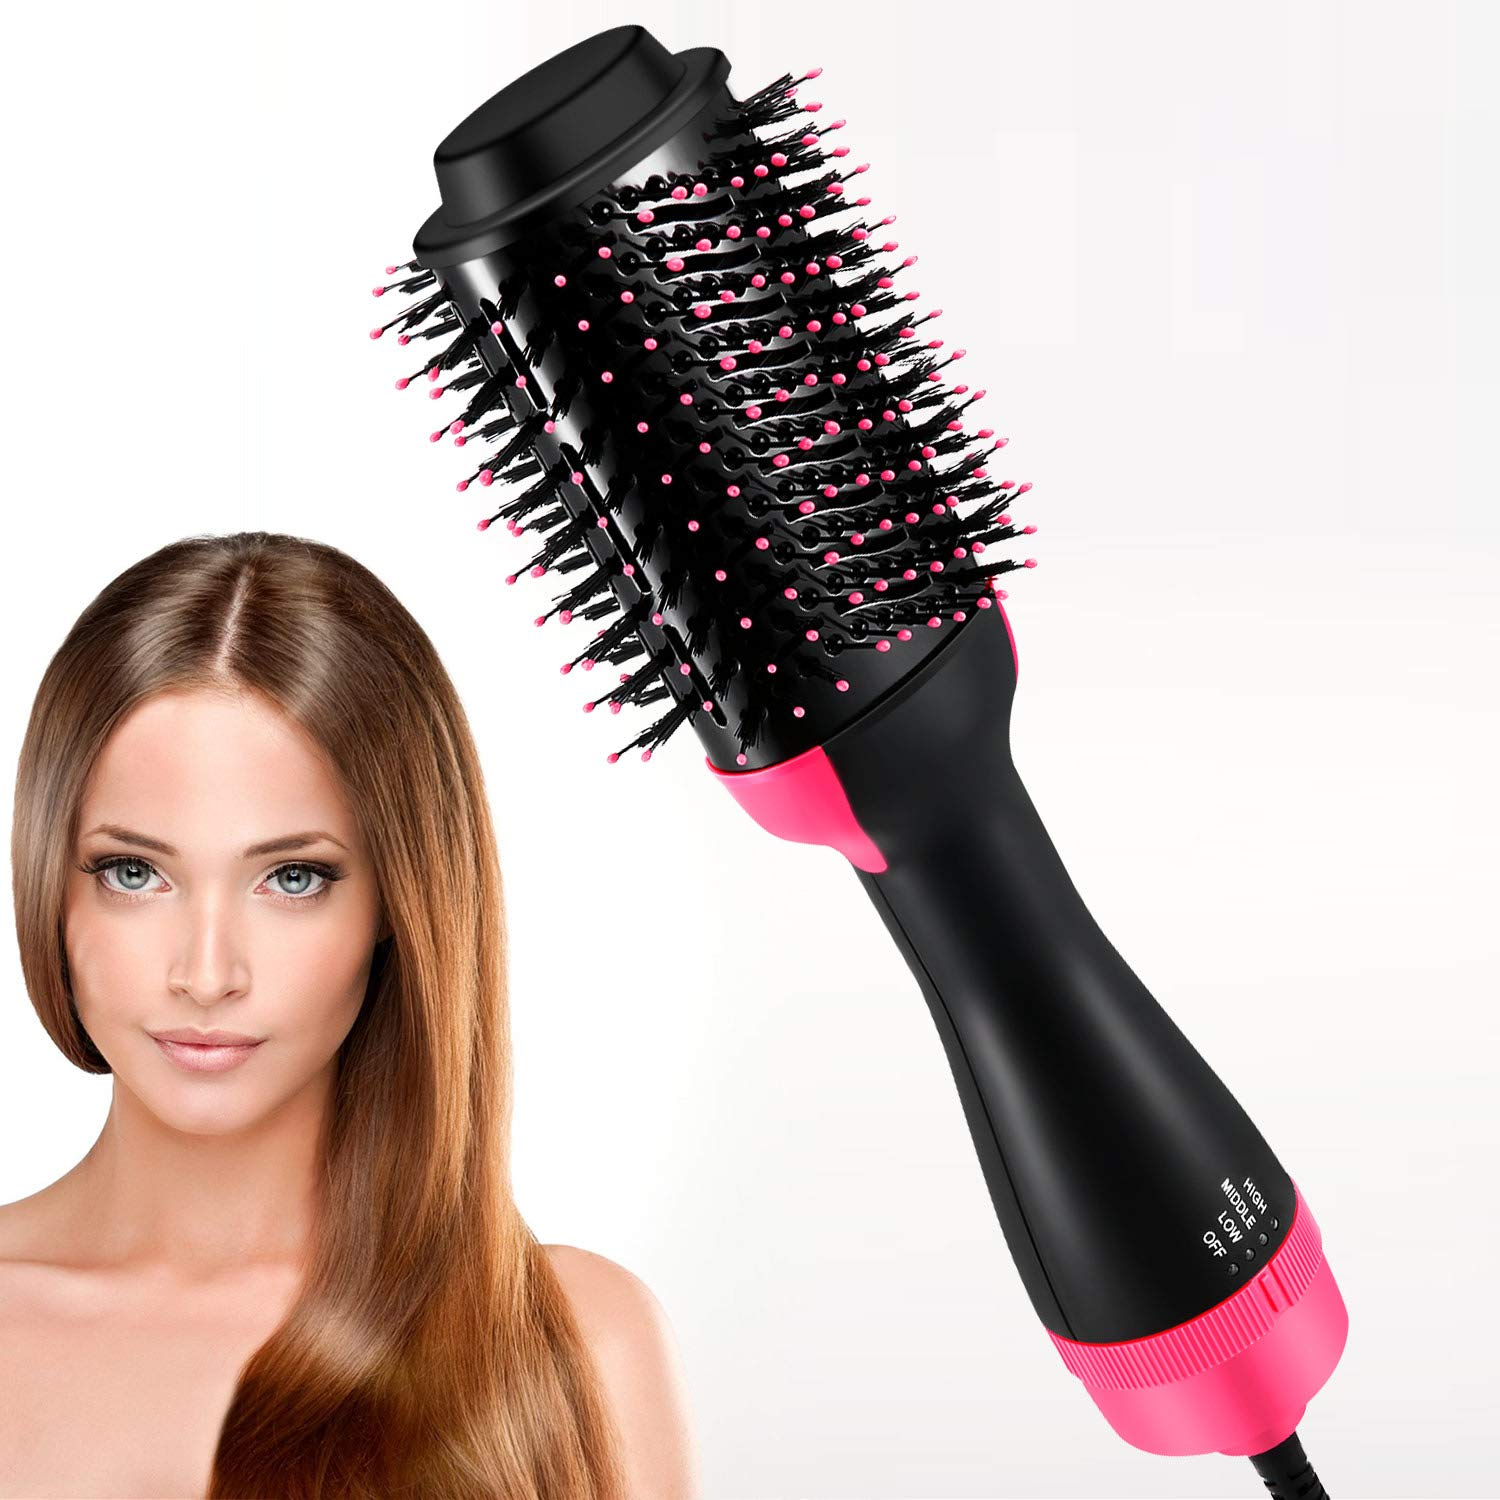 Hot Air Brush, Blow Dryer Brush, One Step Hair Dryer & Volumizer, Ceramic Electric Blow Dryer, 3 in1 Styling Brush Styler (Black/Pink) by Sheevol Beauty